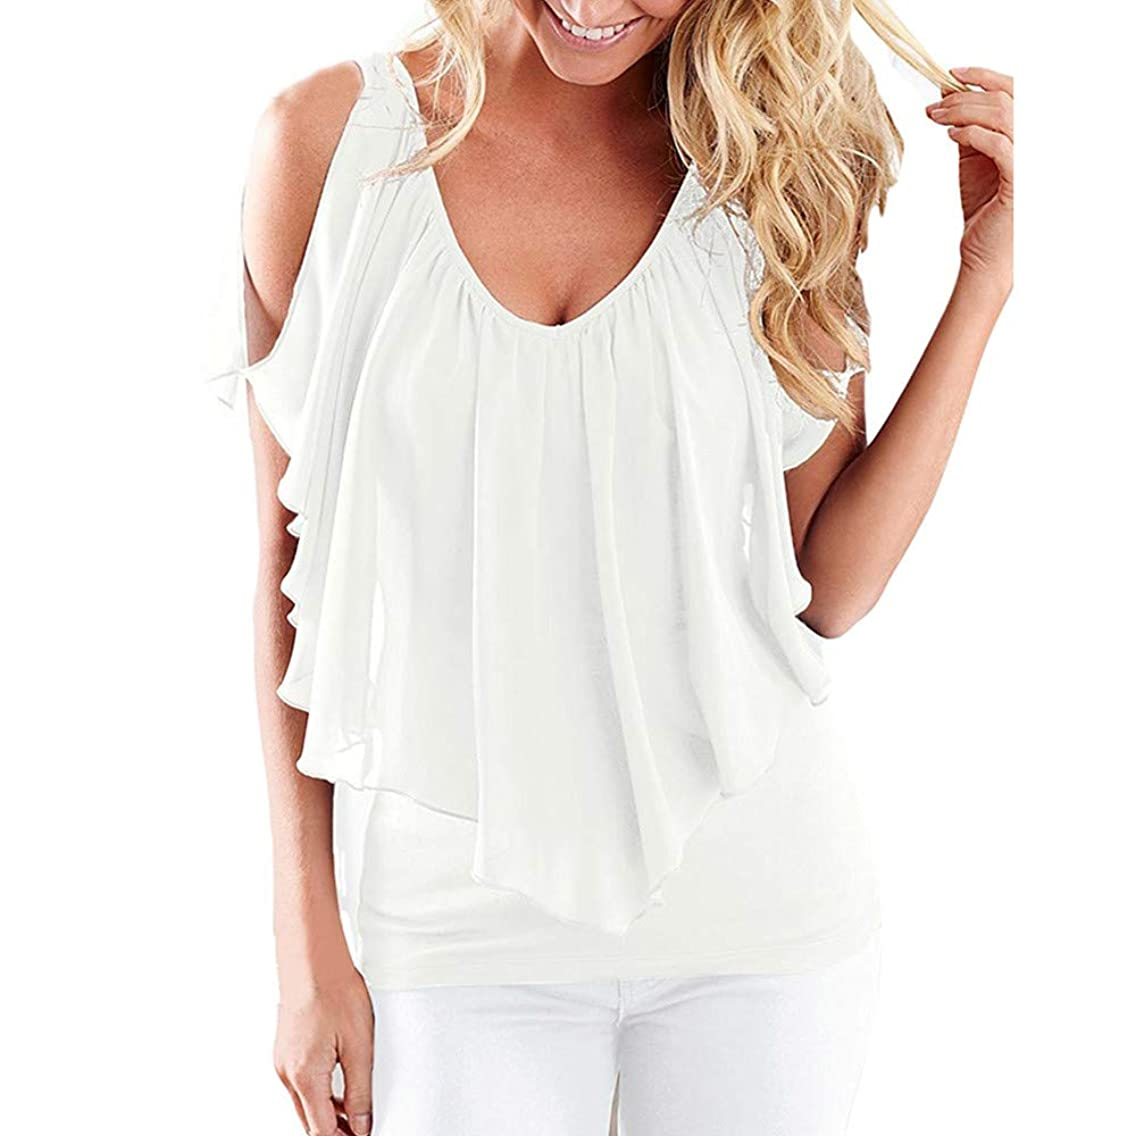 〓COOlCCI〓Women Summer Irregular Chiffon Blouses Off Shoulder Shirts Tops T-Shirts Casual Tees